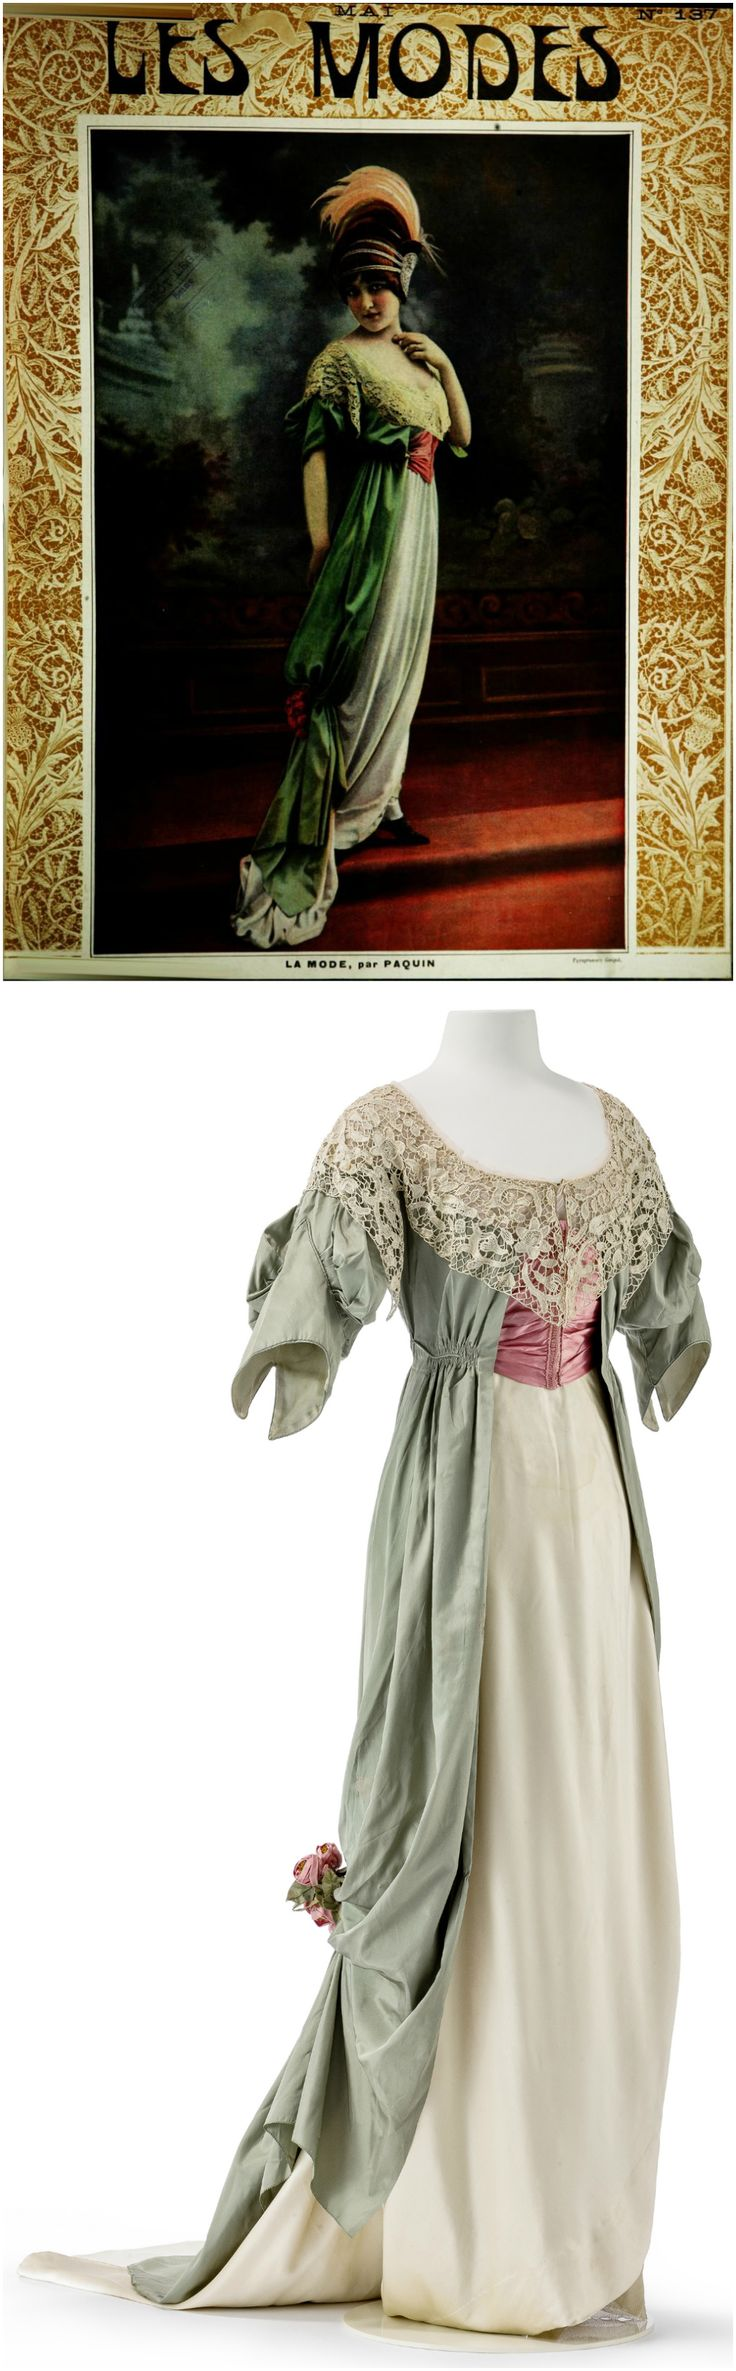 "Two-piece evening dress, ""Boissy,"" by Jeanne Paquin, Paris, 1912, pictured on the cover of the May 1912 issue of ""Les Modes."" Photos (Top): courtesy of Gallica BnF; (Bottom): © Staatliche Museen zu Berlin, Kunstgewerbemuseum / Stephan Klonk. Dress in pastel shades combines a ""tunique"" in light green silk in tabby weave with a skirt made of cream silk satin. The rose red corset belt accentuates the high waist. CLICK THROUGH FOR BIGGER IMAGES."